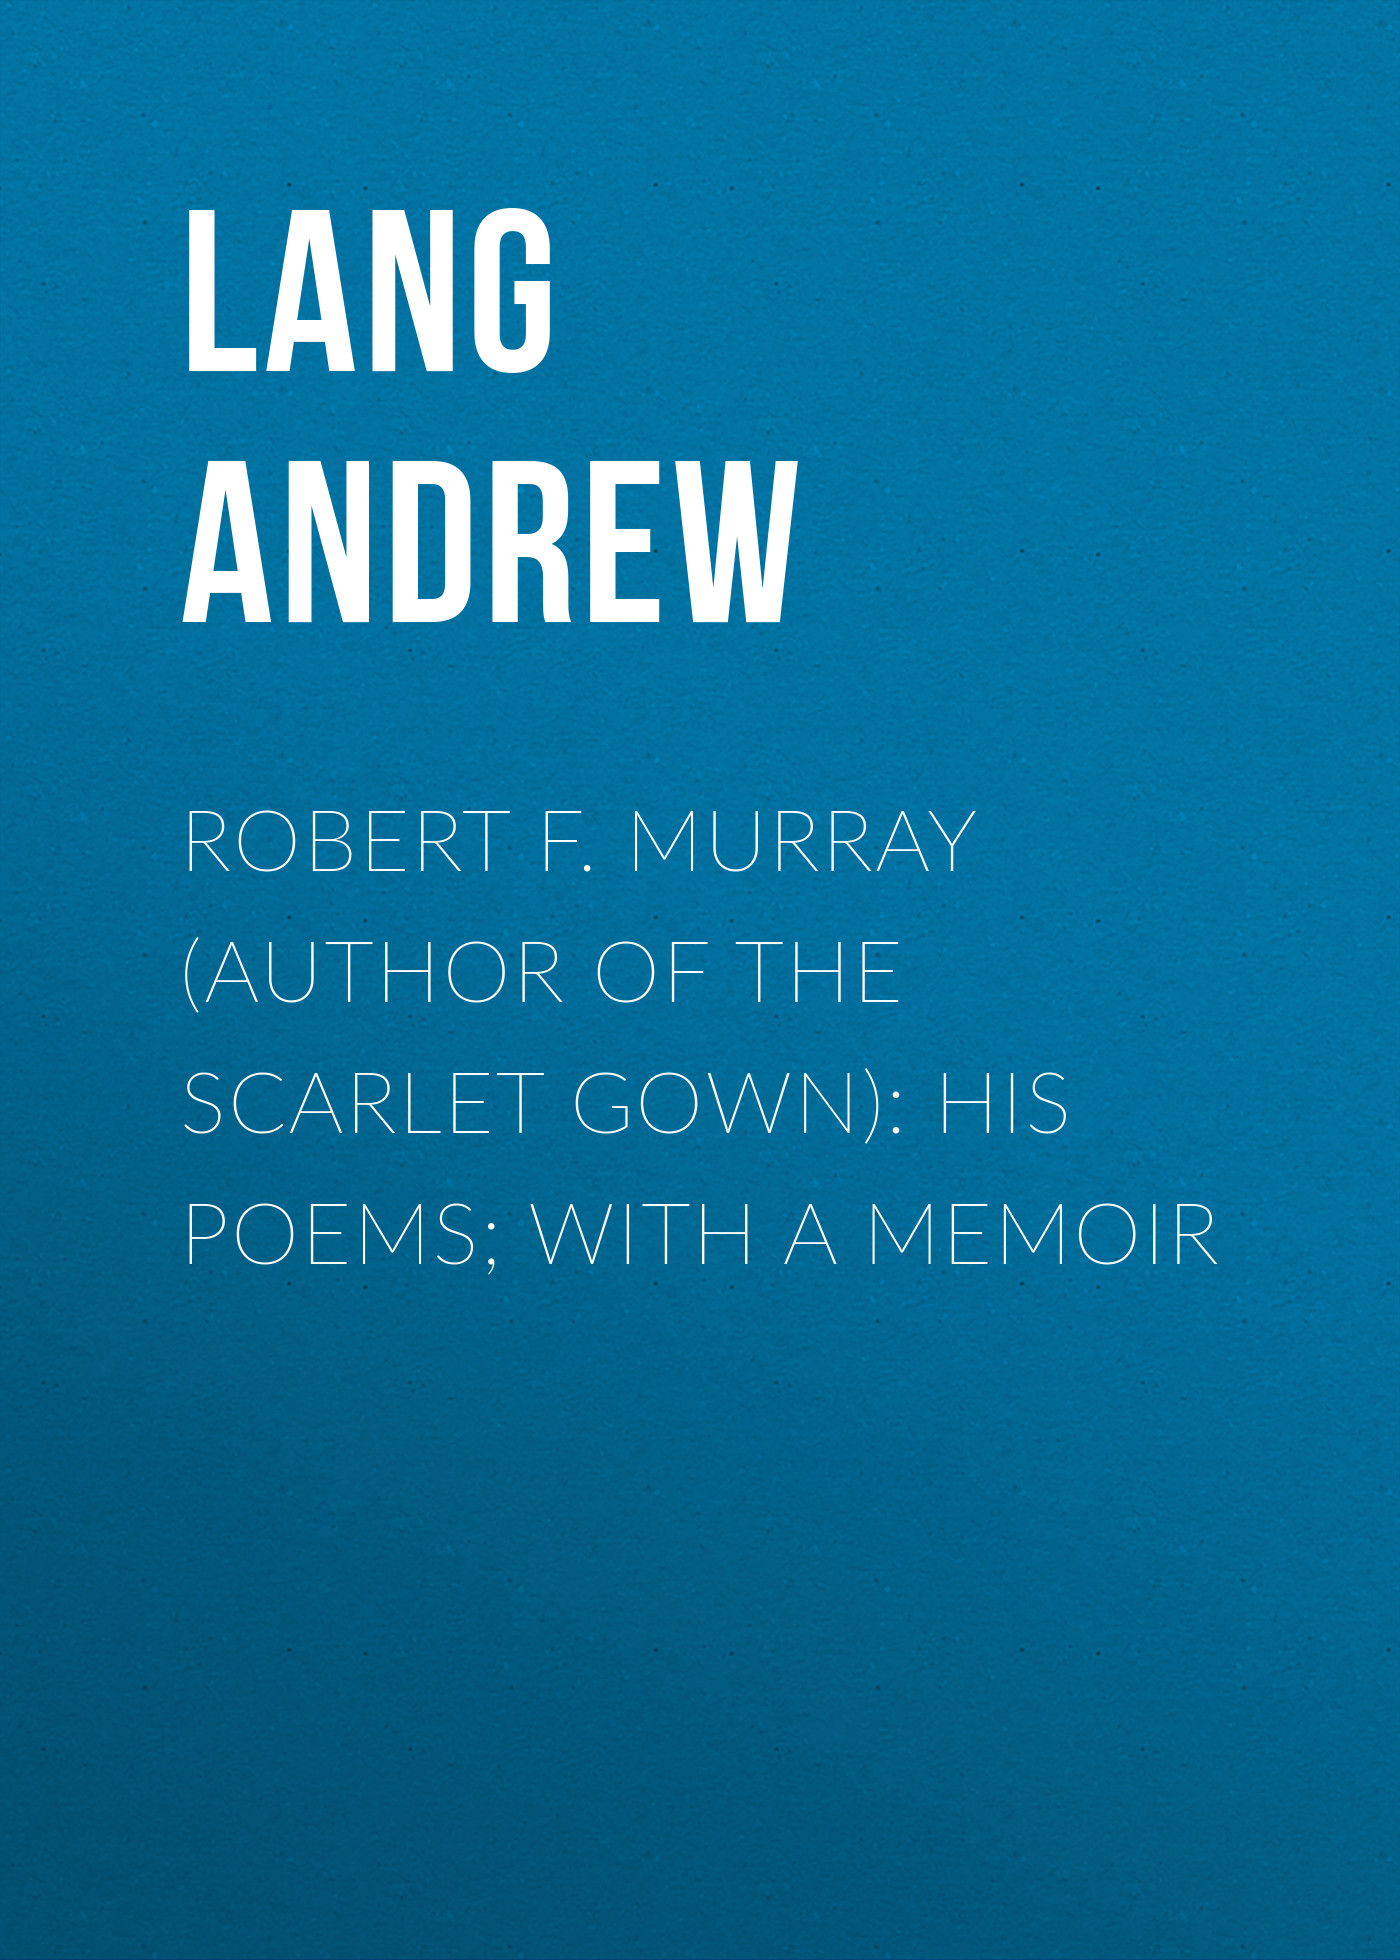 Lang Andrew Robert F. Murray (Author of the Scarlet Gown): His Poems; with a Memoir 10pcs lot baby girls colorful mini ring elastic hair bands tie gum for hair ponytail holder rubber bands kids hair accessories